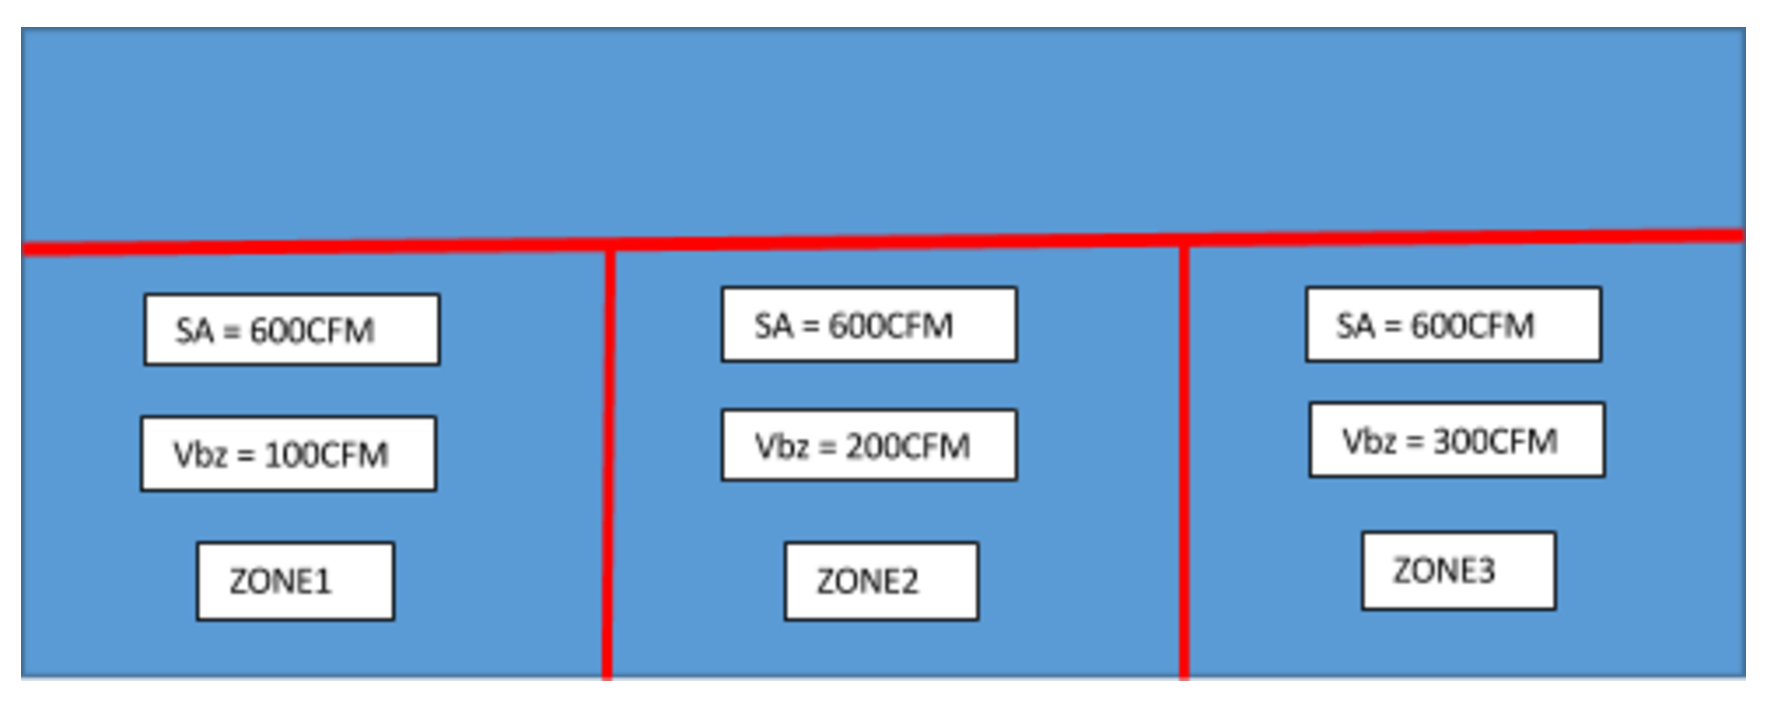 Simple 3-Zone System